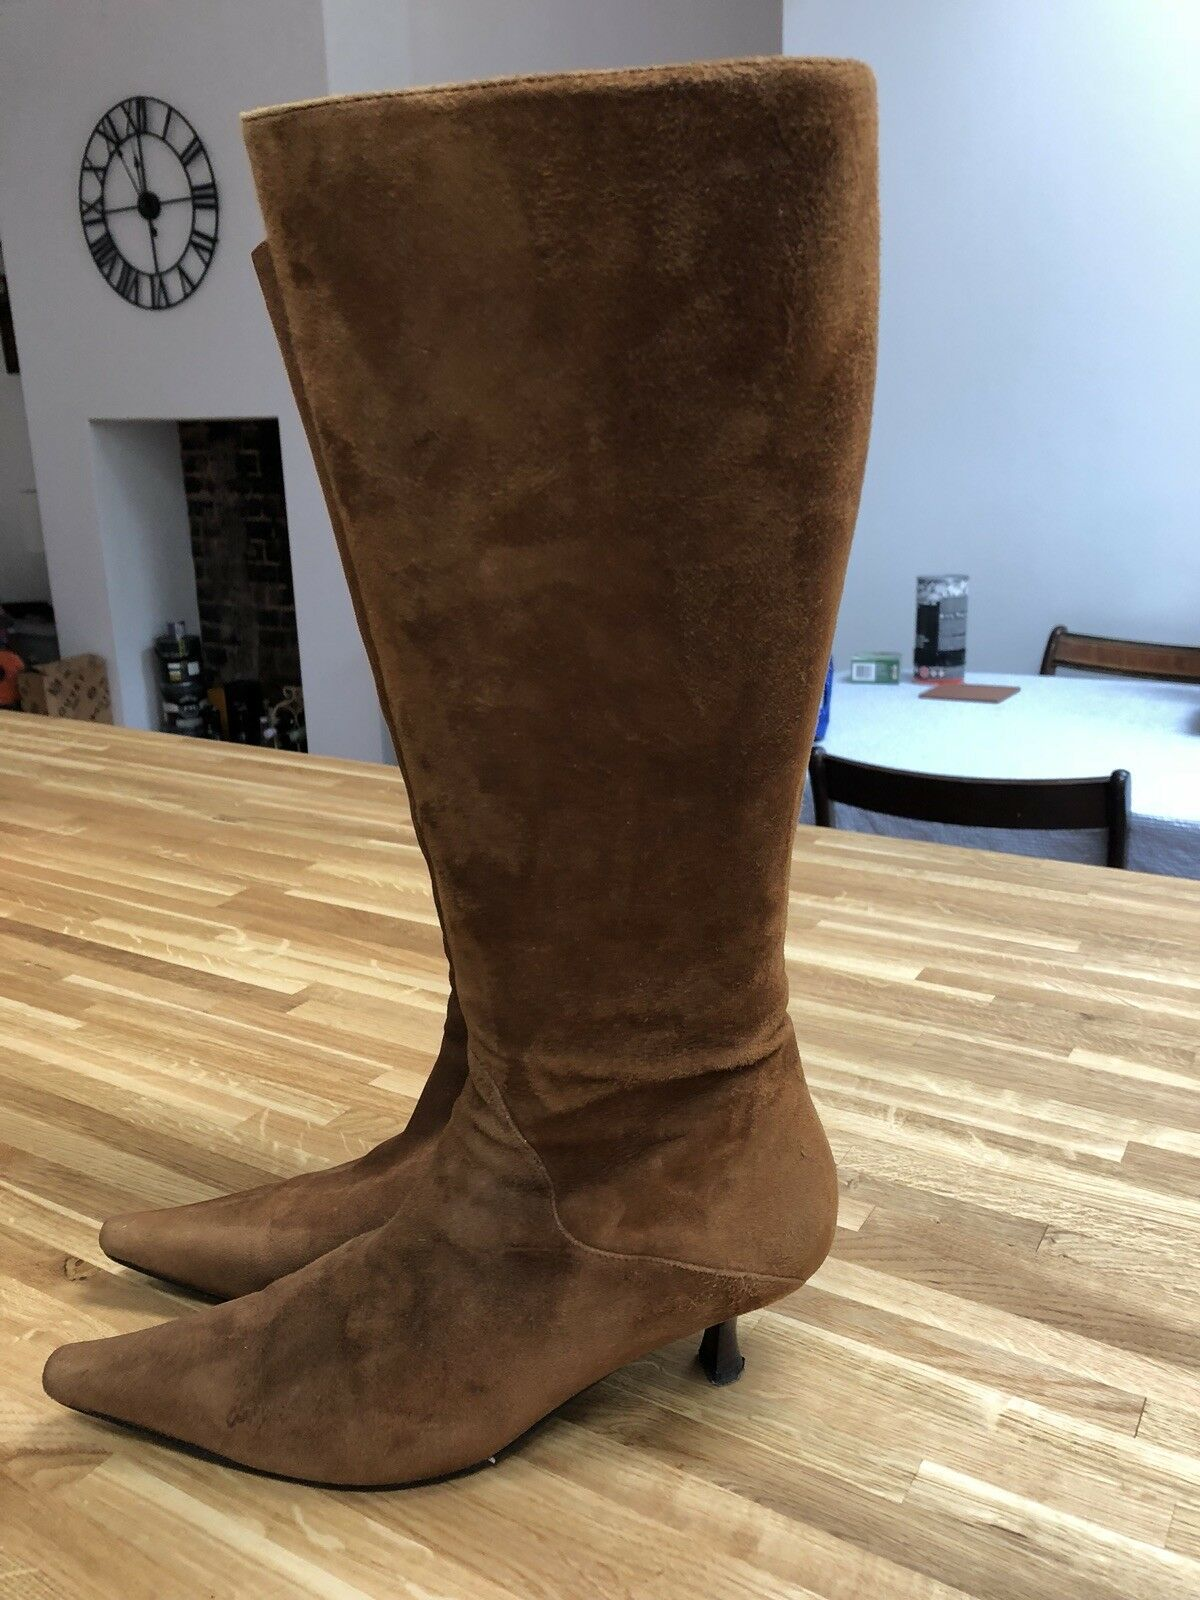 Knee Boots High Brown Suede Leather Boots Knee Size 5 38 a3243a